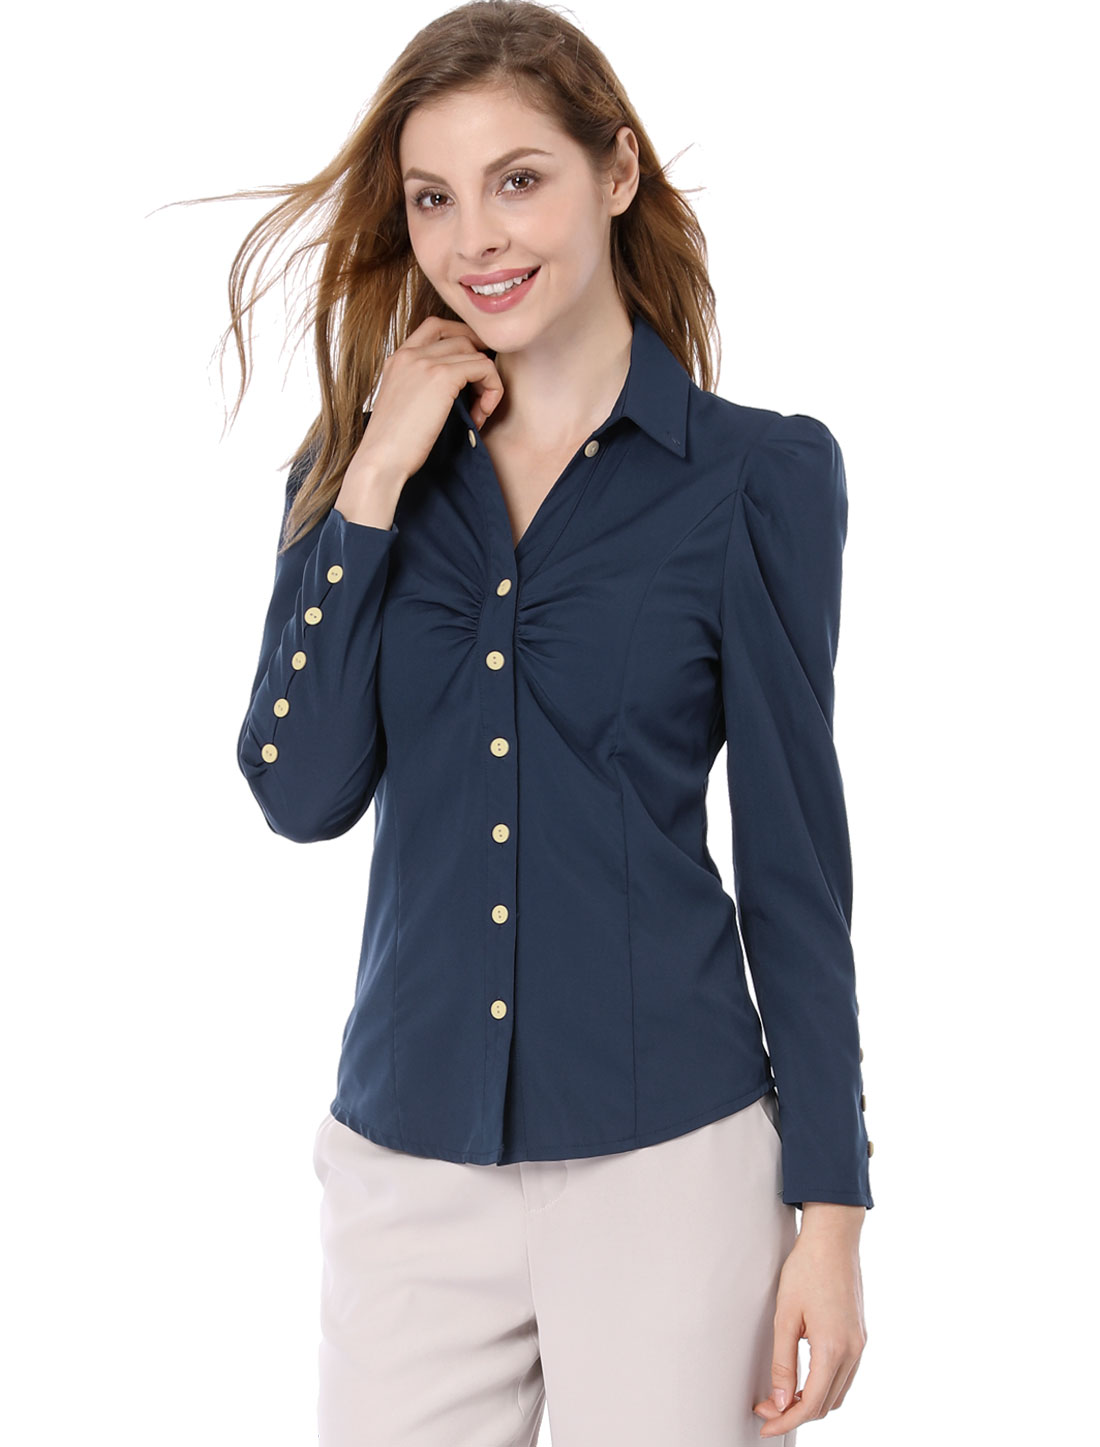 Women Single Breasted Round Hem Casual Shirt Navy Blue S